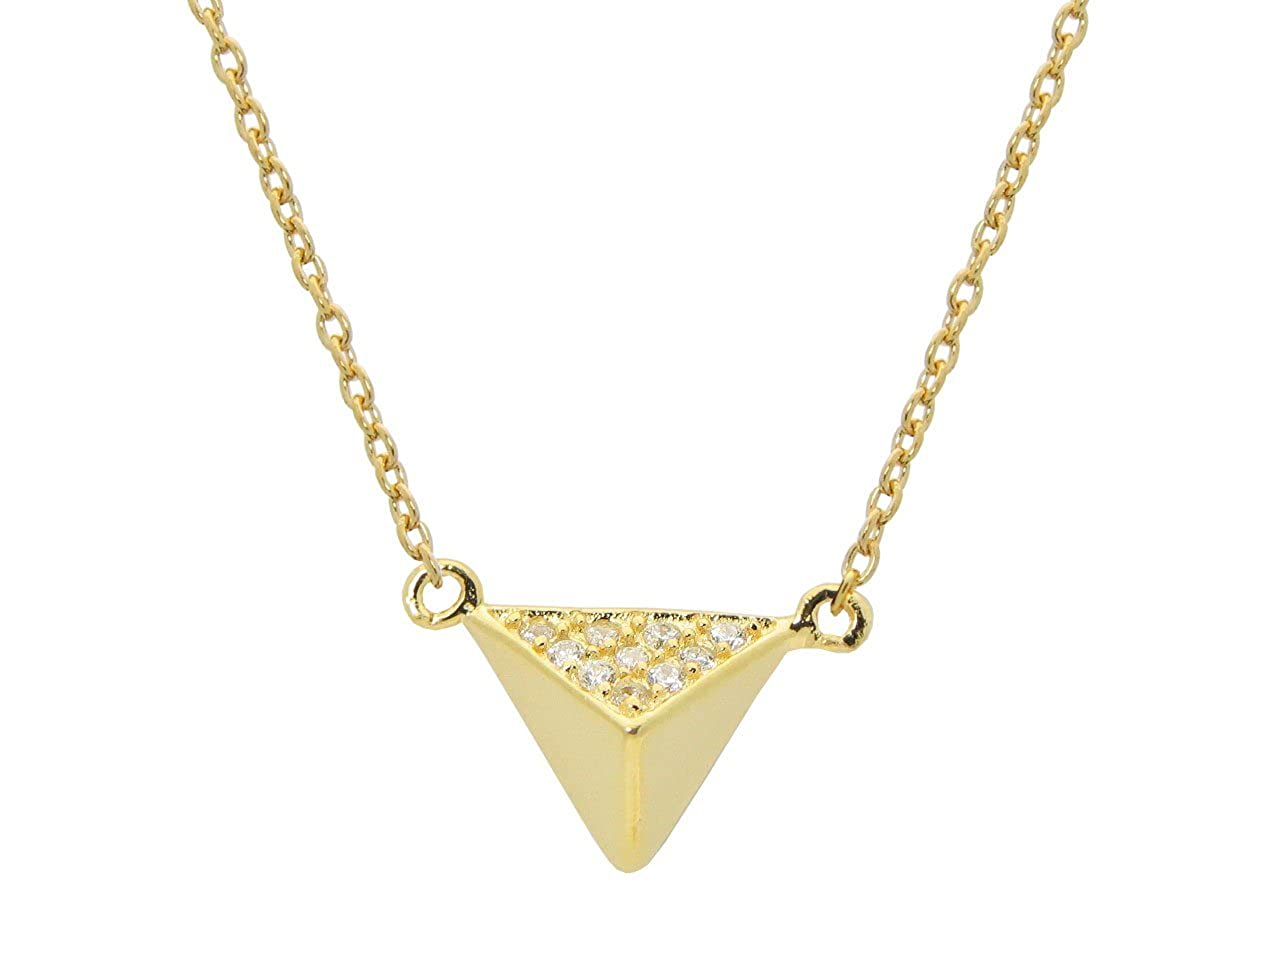 Fronay Collection Silver Gold Plated Triangle Pyramid Pendant Necklace 15 1 Cz Side .9mm